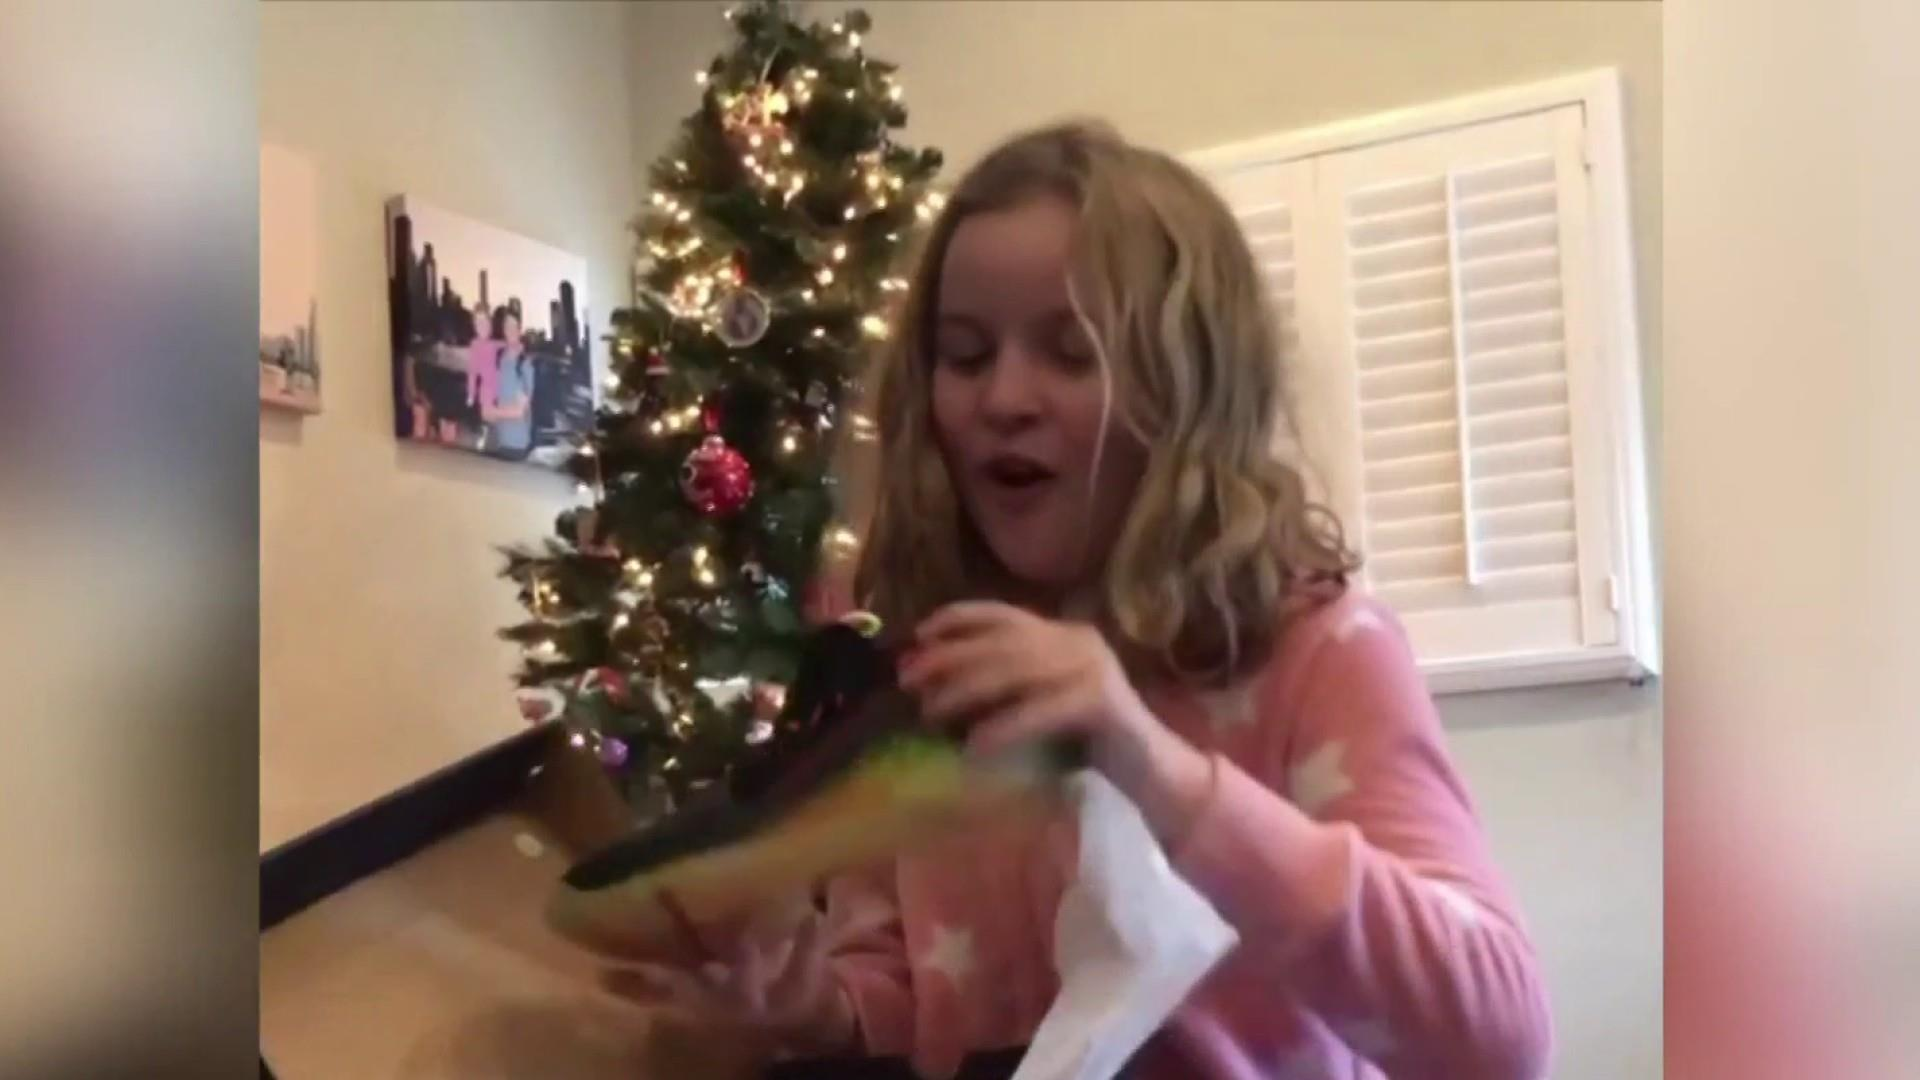 #GoodNewsRUHLES: Steph Curry keeps promise, gifts shoes to young fan